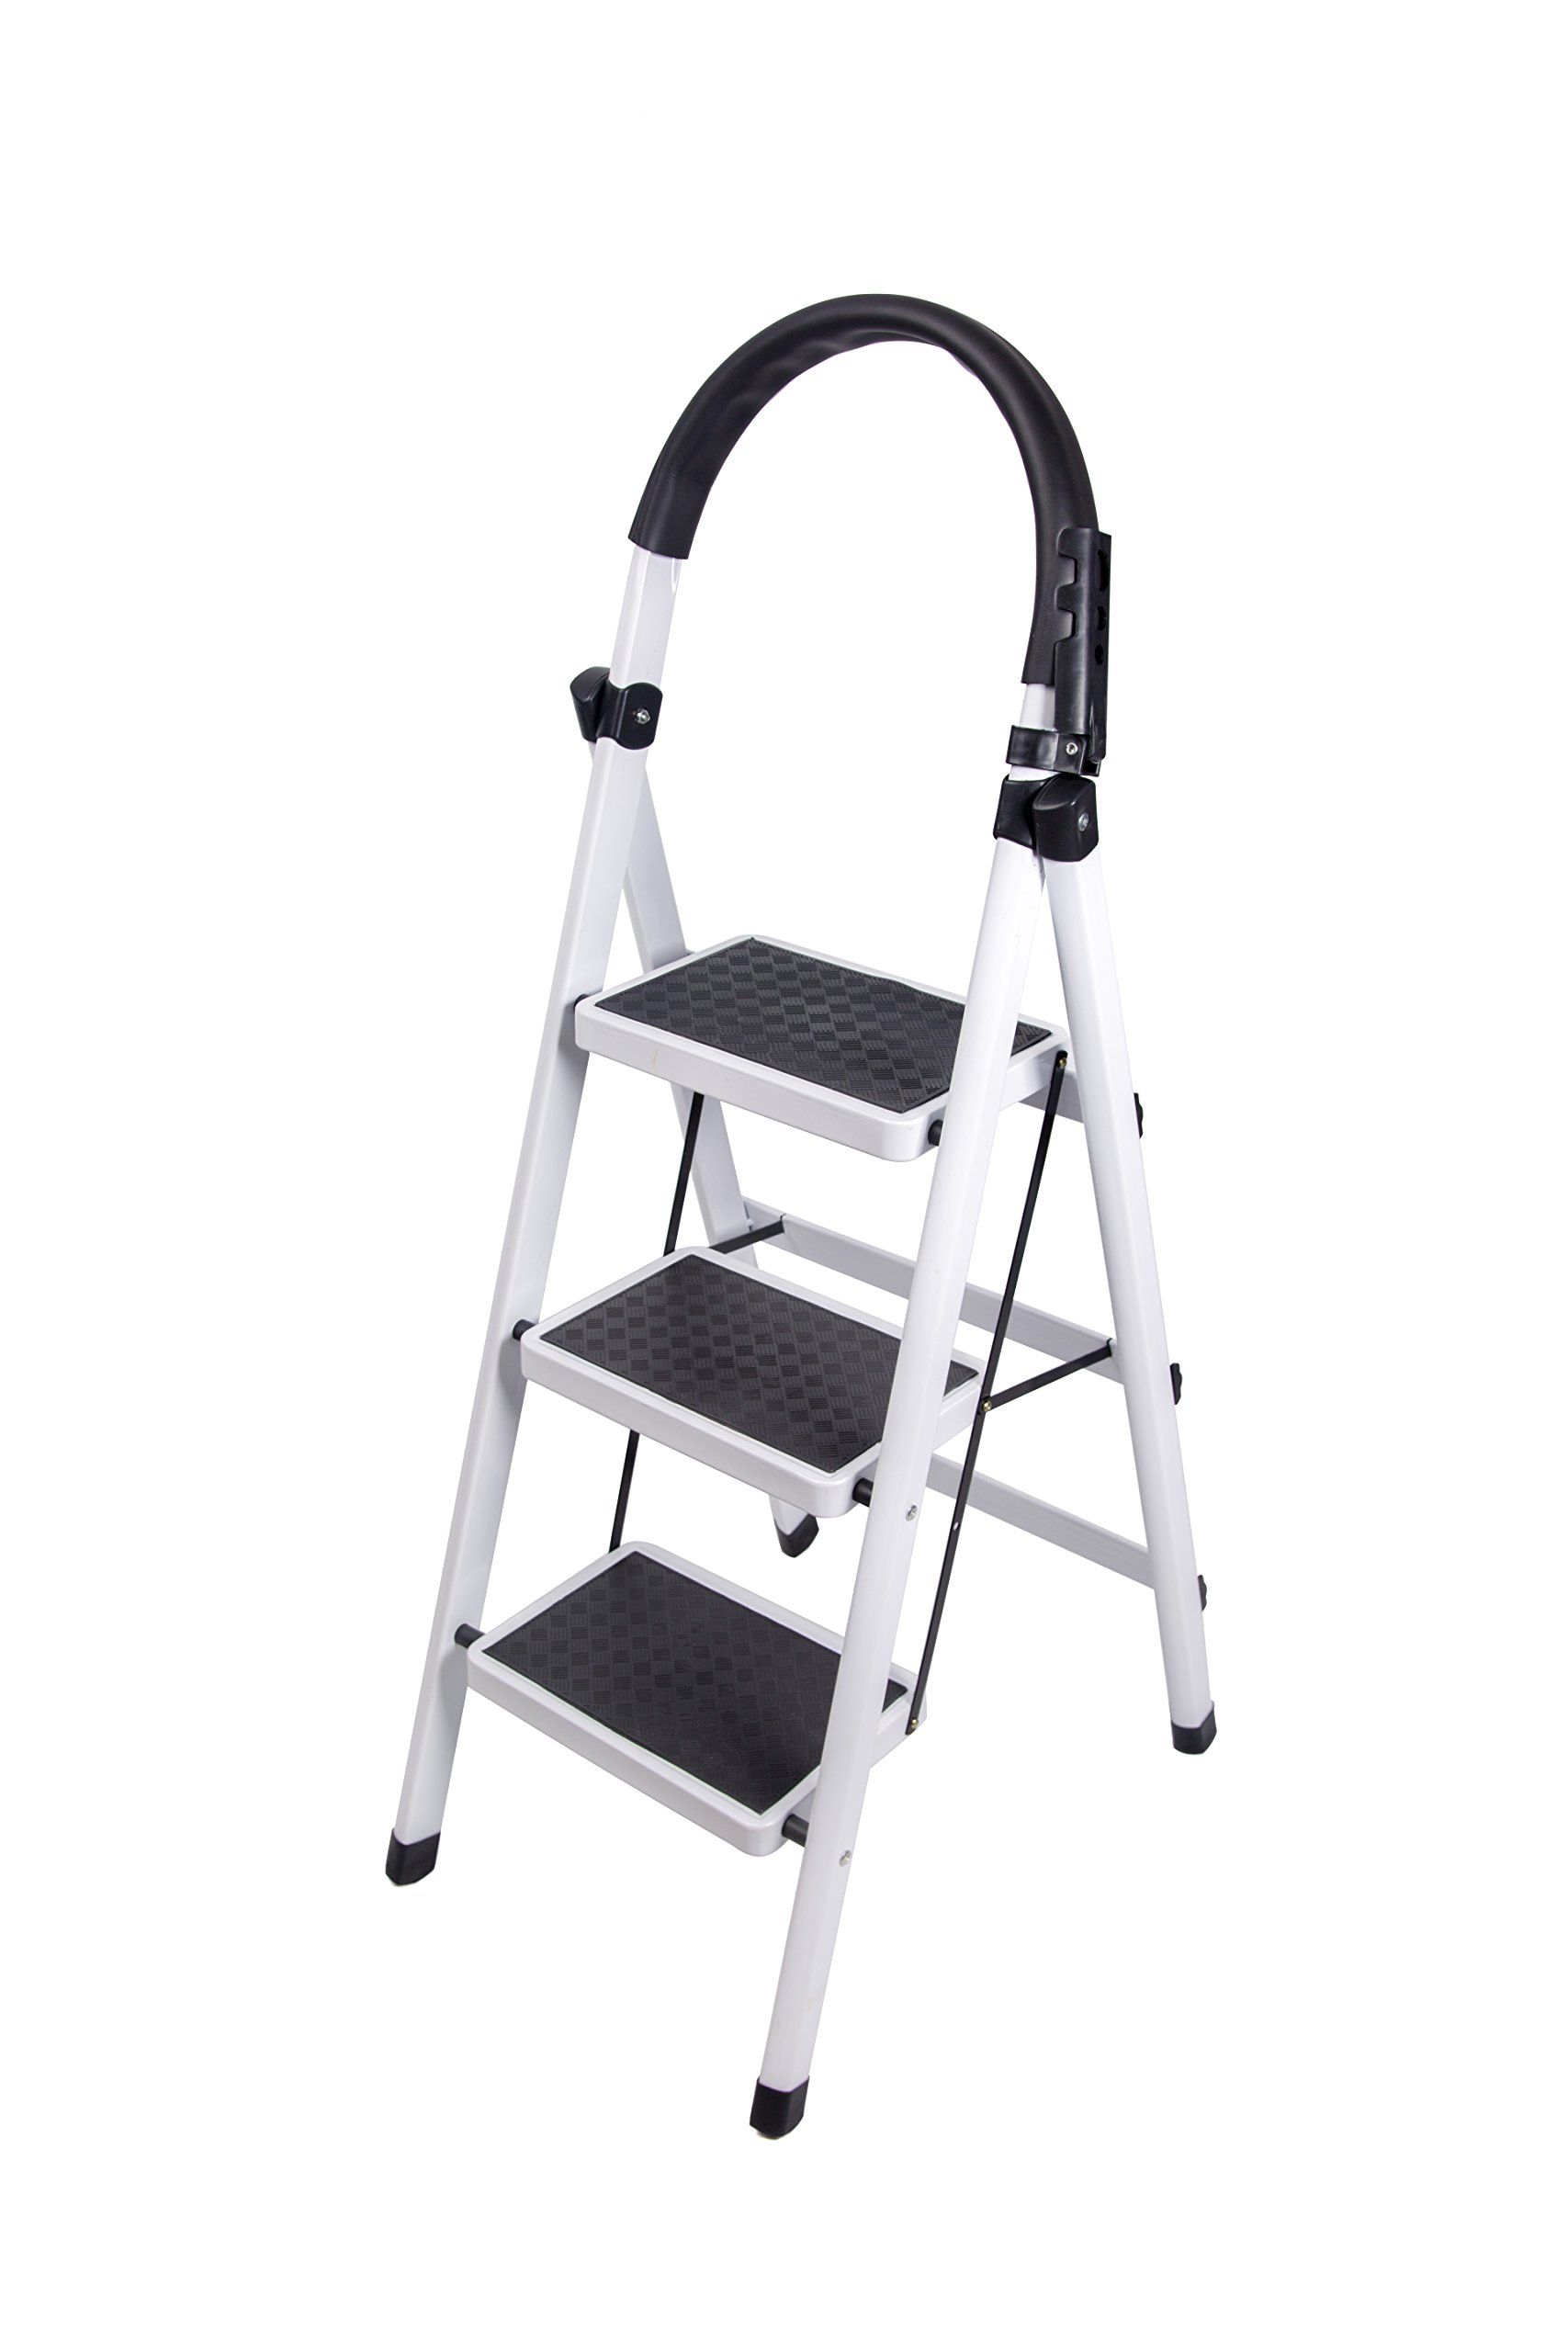 Gimify 3 Step Ladder Household Folding Steel Frame Stool Platform Ladder Anti-Slip Portable White (3 Step)